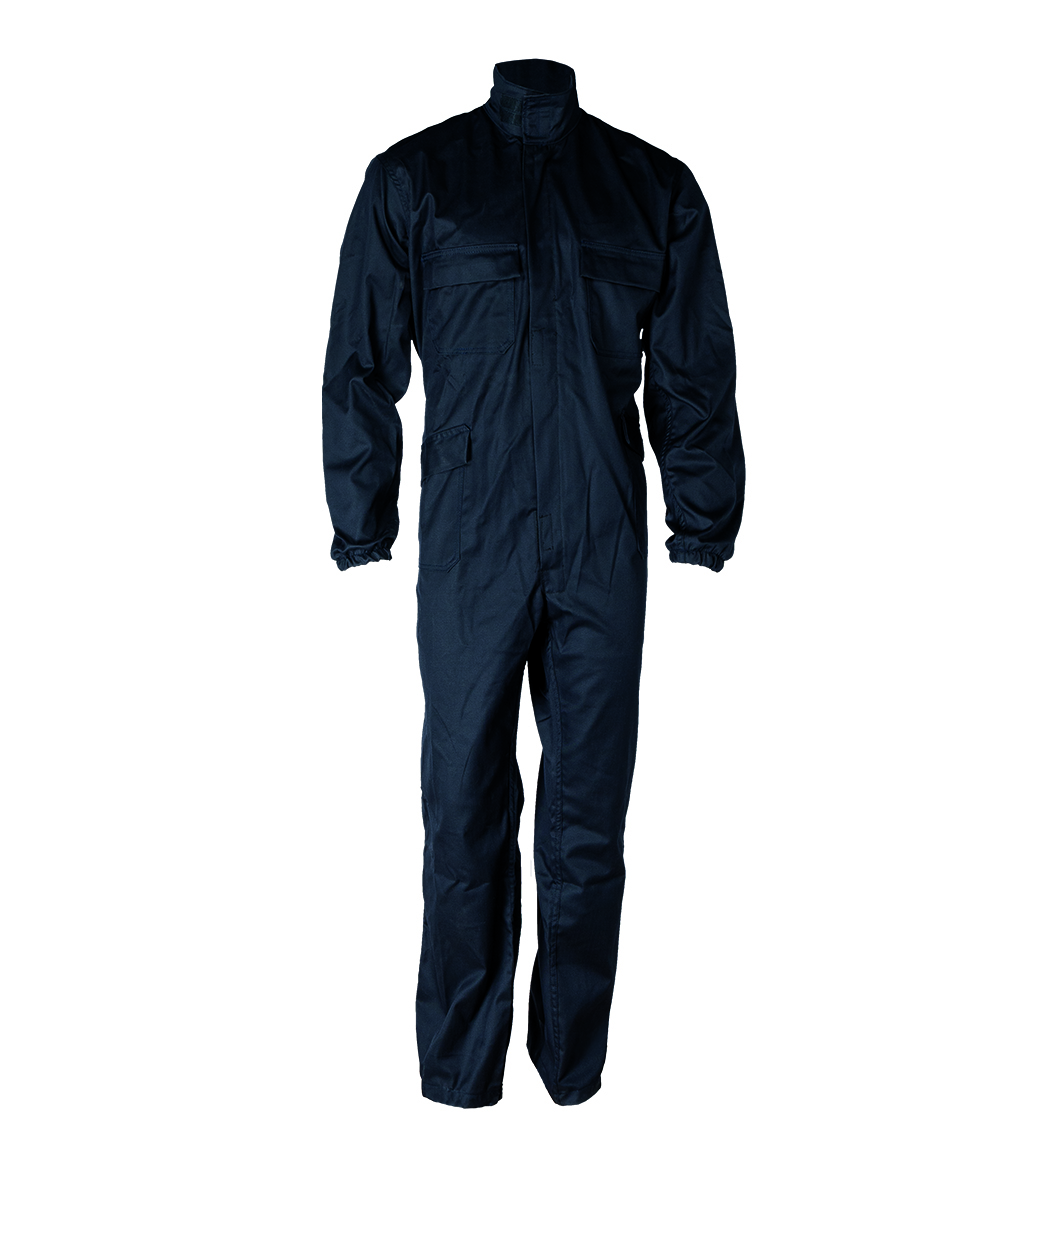 0261 - FR Antistatic Coverall Image